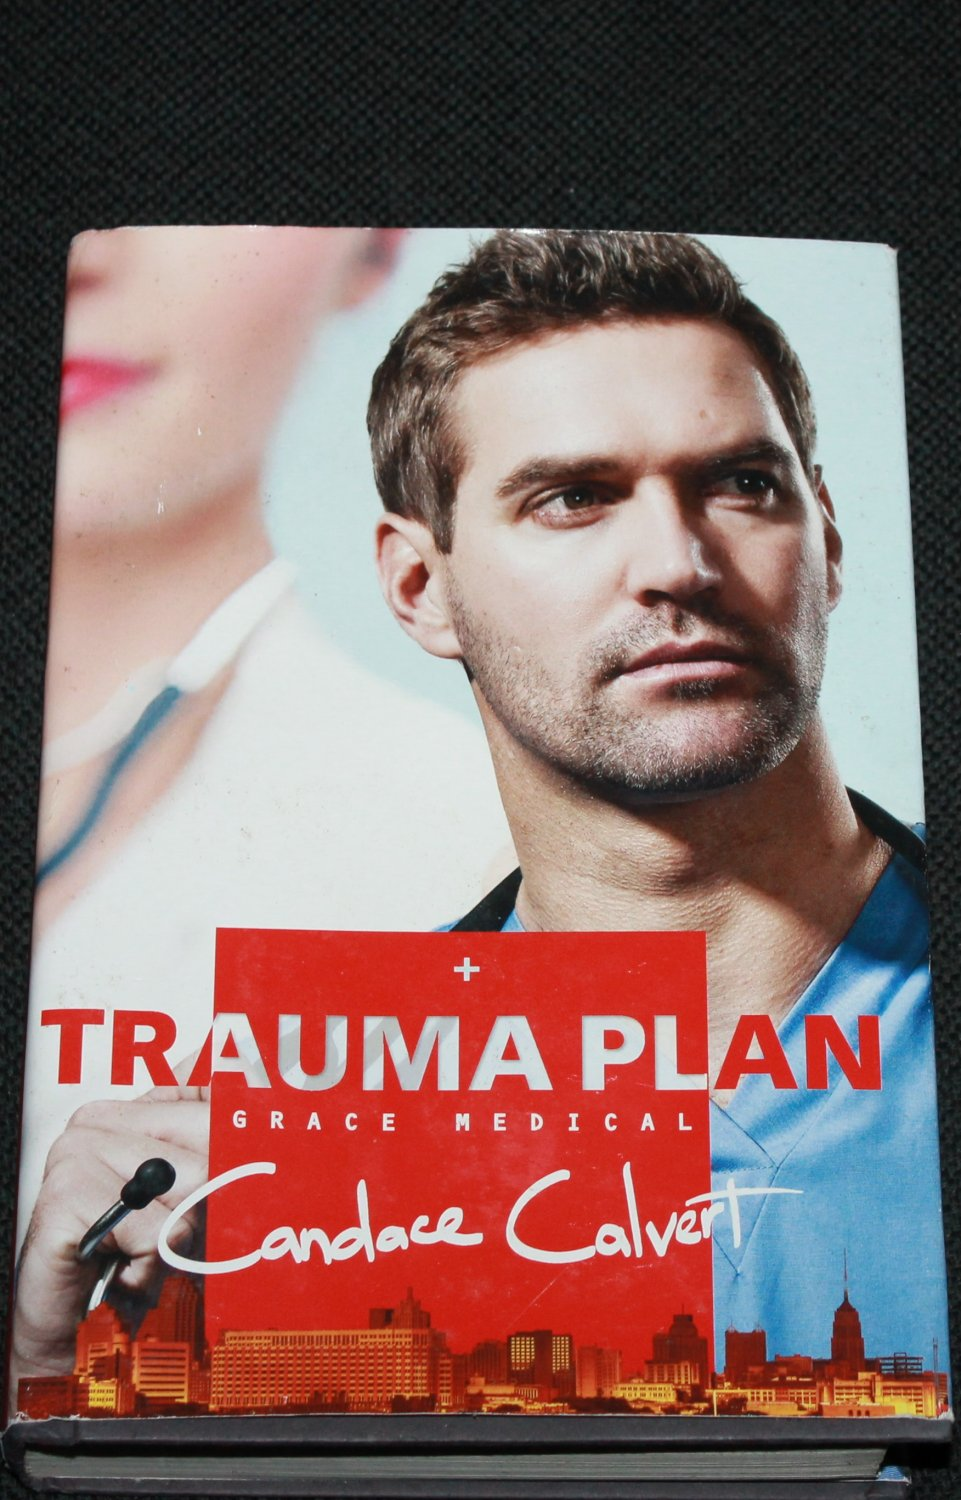 Trauma Plan (Grace Medical) - romance novel by Candice Calvert paperback book